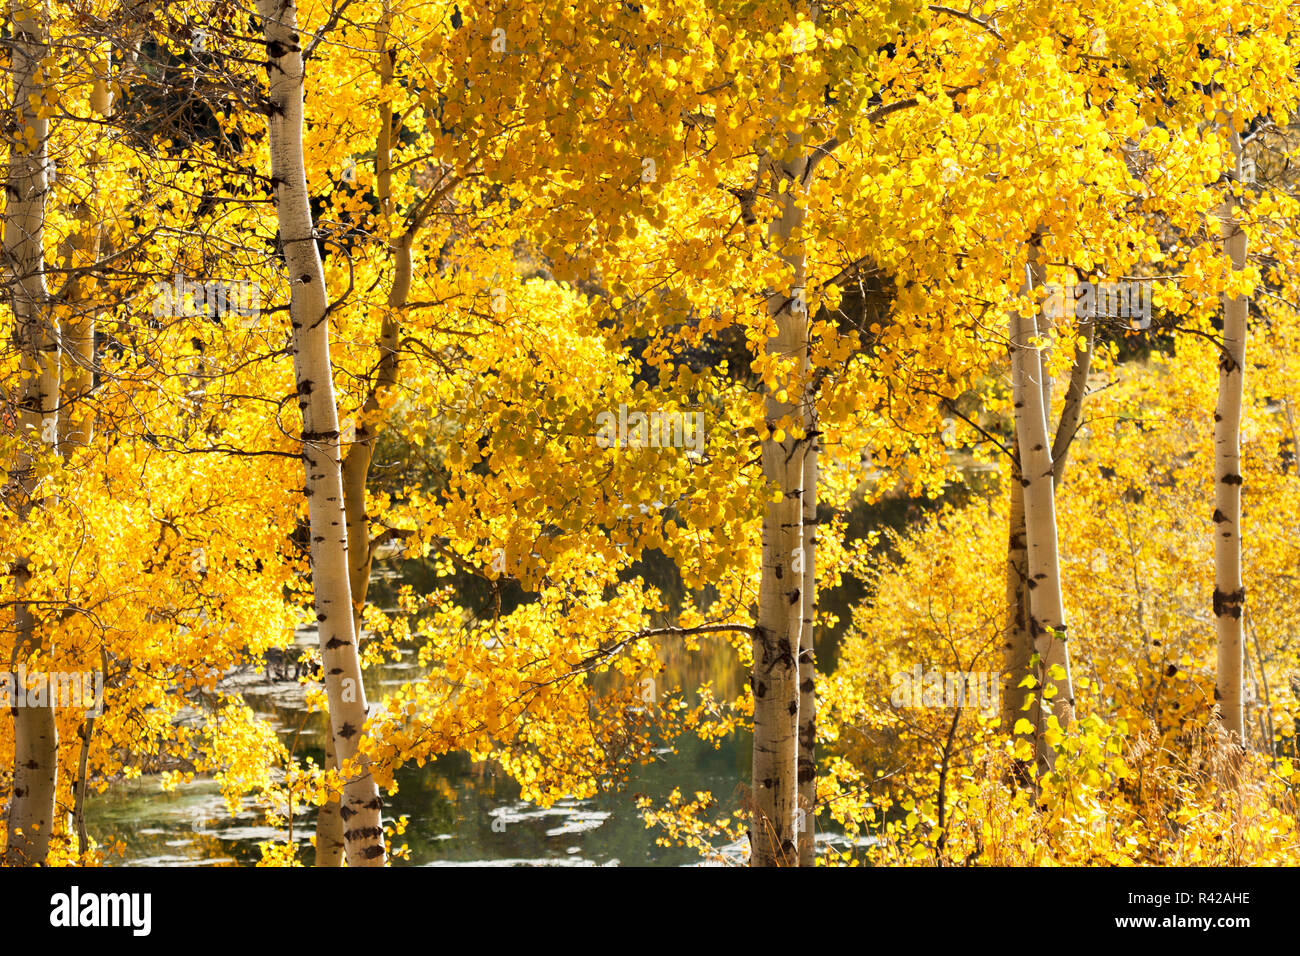 USA, Wyoming. Golden aspen leaves glow in sunlight next to a pond. Stock Photo